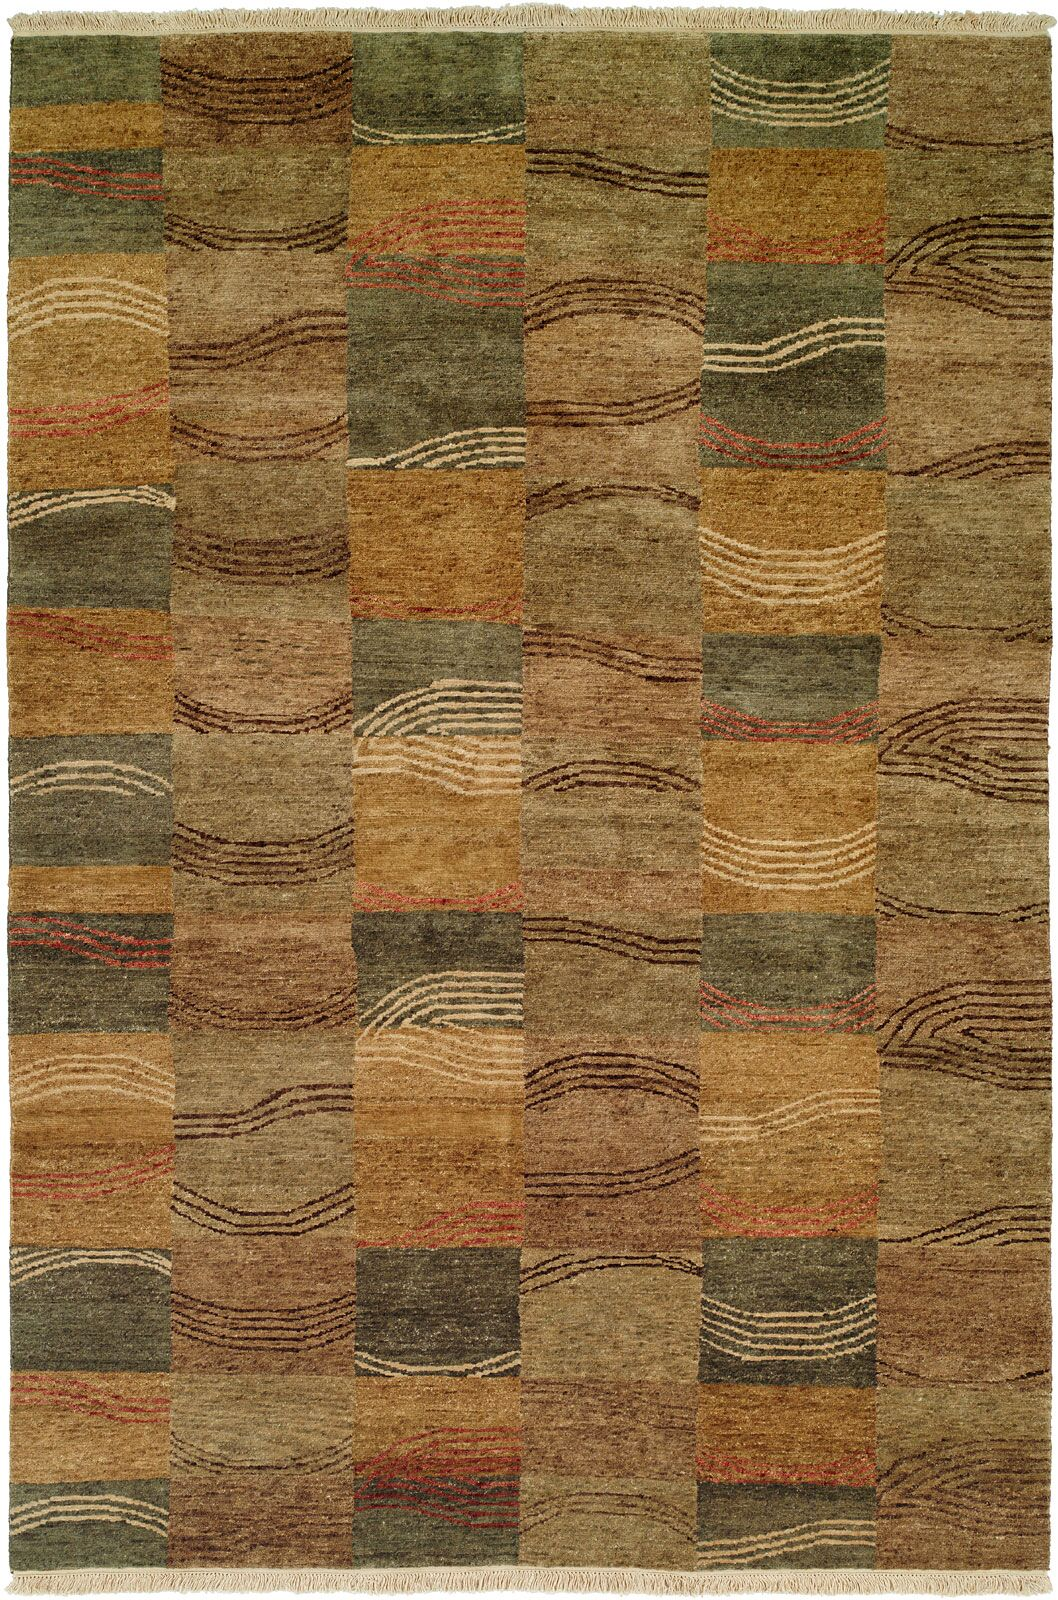 Namp'O Hand-Knotted Brown/Gray Area Rug Rug Size: Runner 2'6